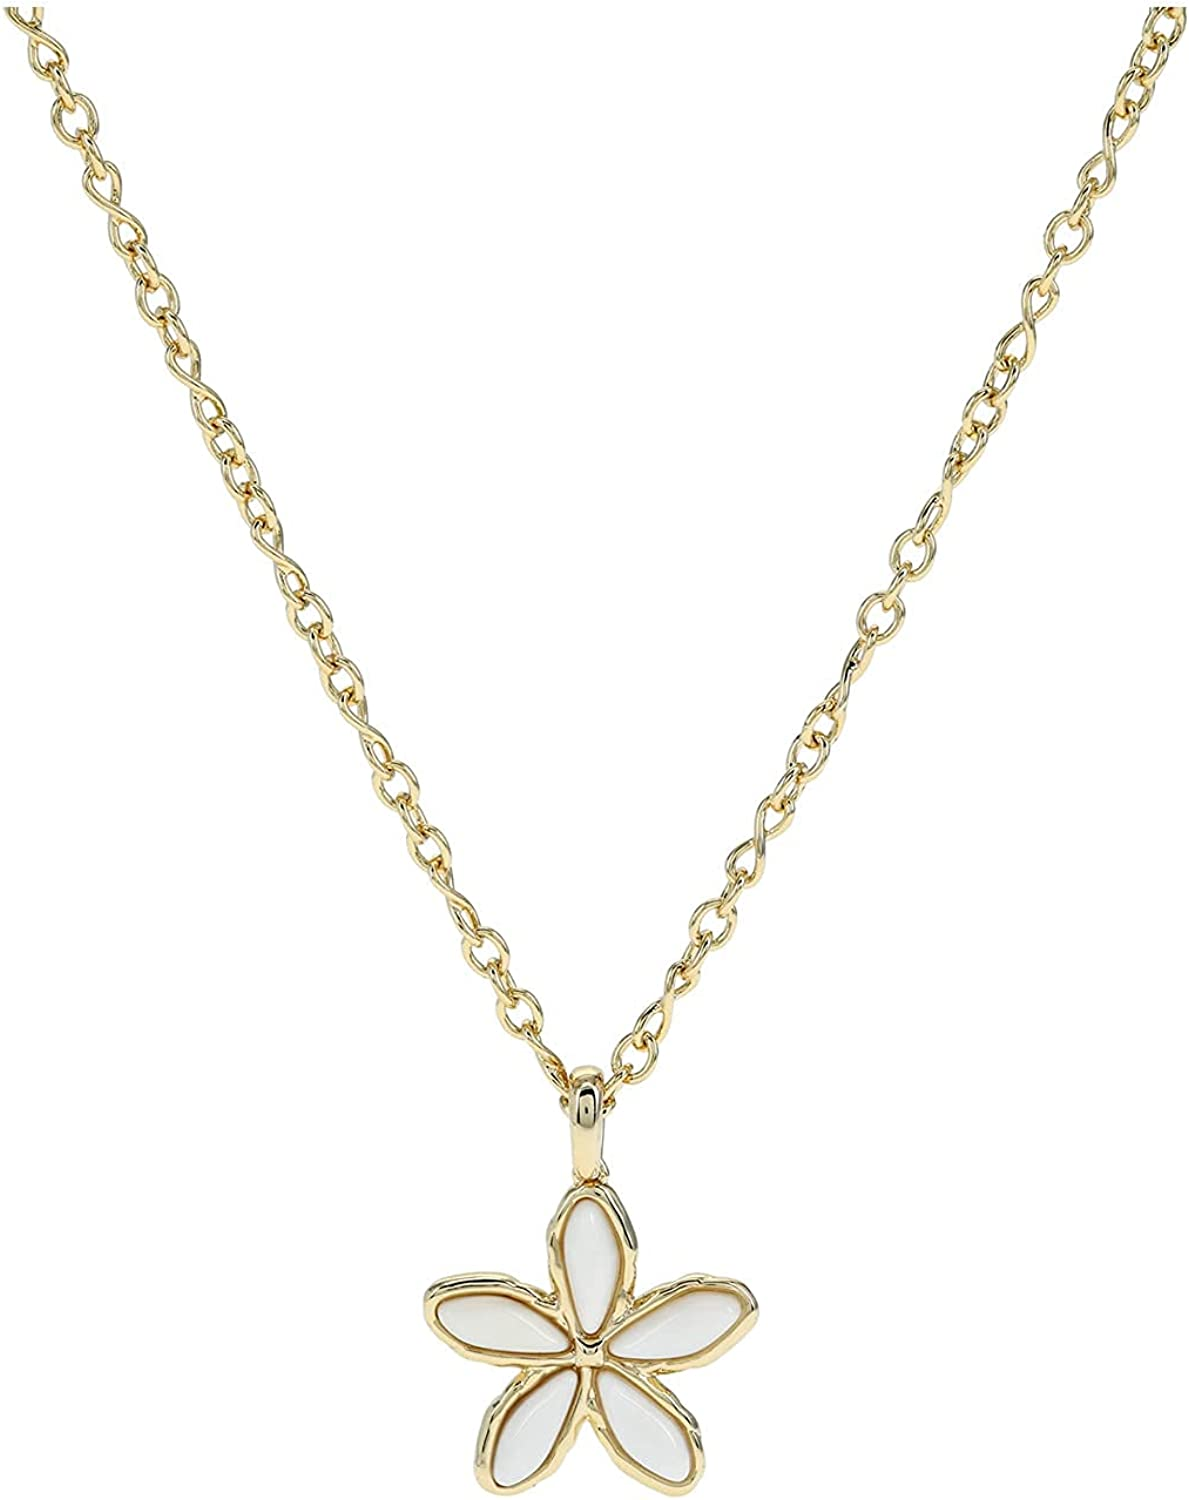 Kendra Scott Kyla Chicago Mall 2021new shipping free shipping Necklace Flower Pendant